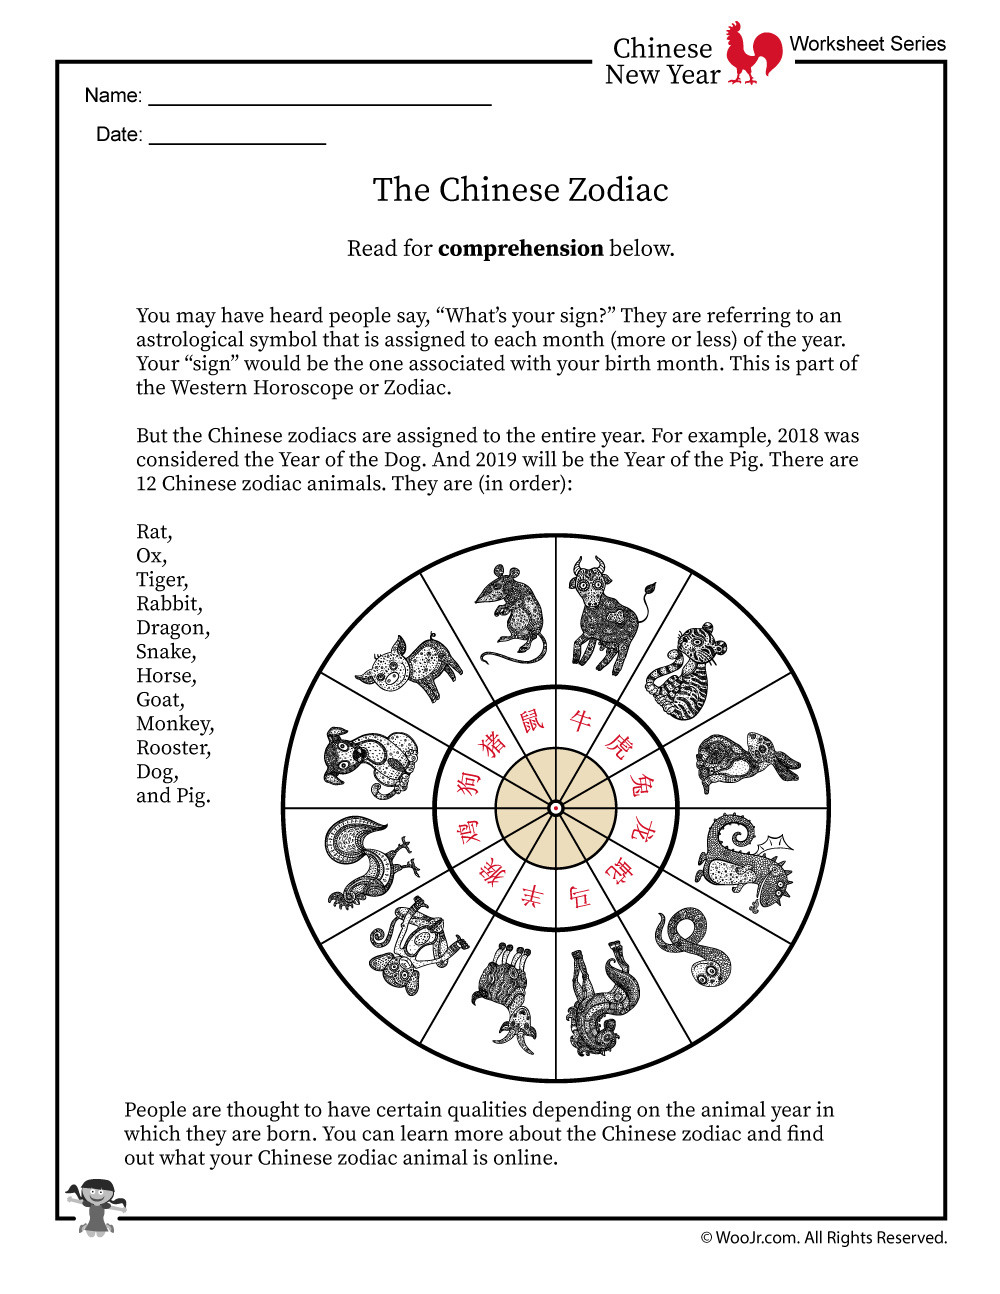 image regarding Chinese Zodiac Printable titled Chinese Zodiac Worksheet Woo! Jr. Youngsters Pursuits